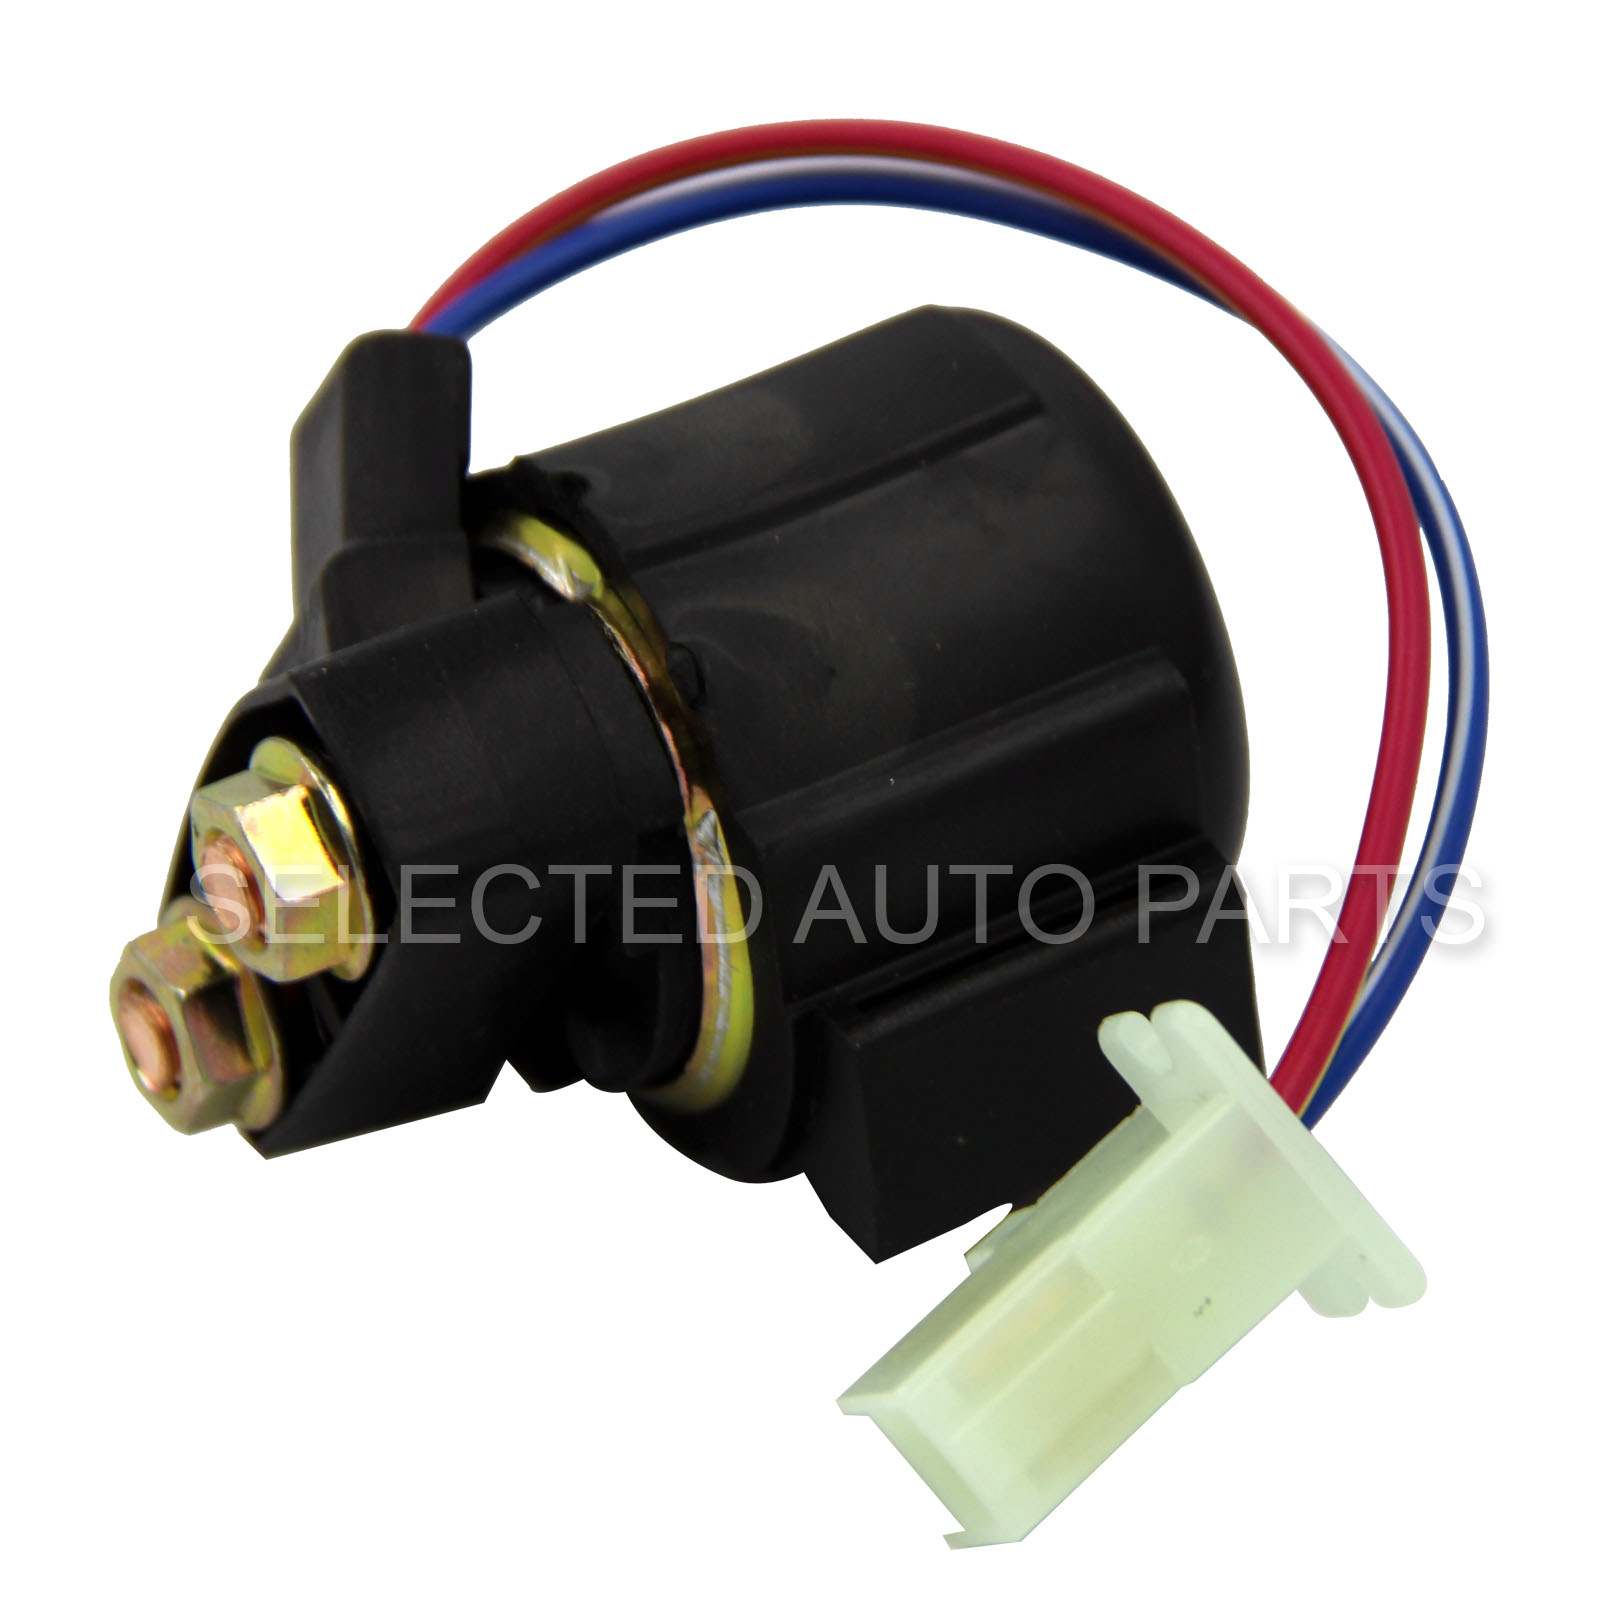 Yamaha Starter Solenoid Wiring Diagrams 3 Pole Beand New Relay For 1987 2004 4 Post Diagram